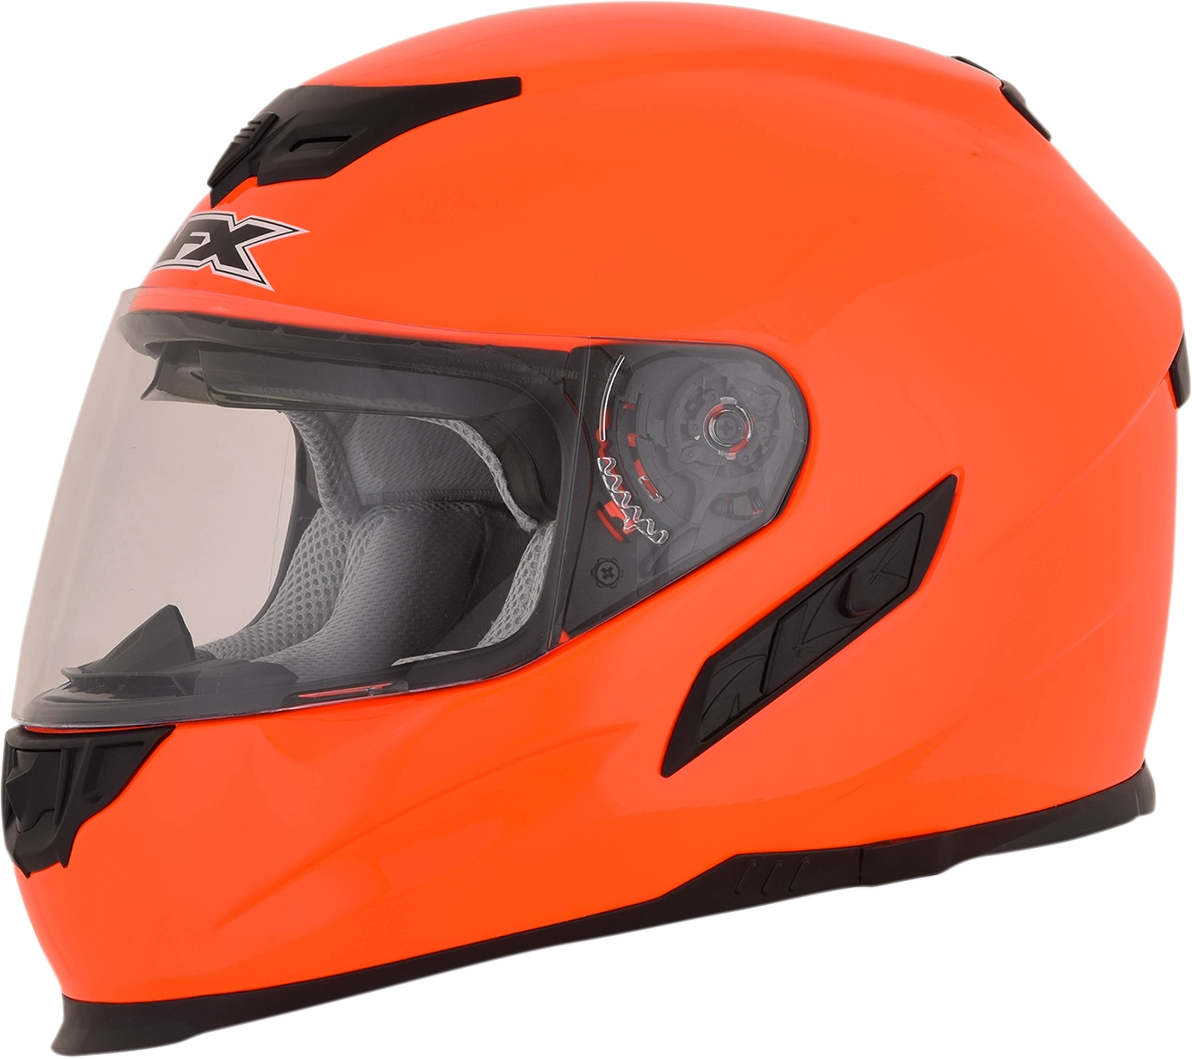 AFX FX-105 Solid Full Face Motorcycle Helmet